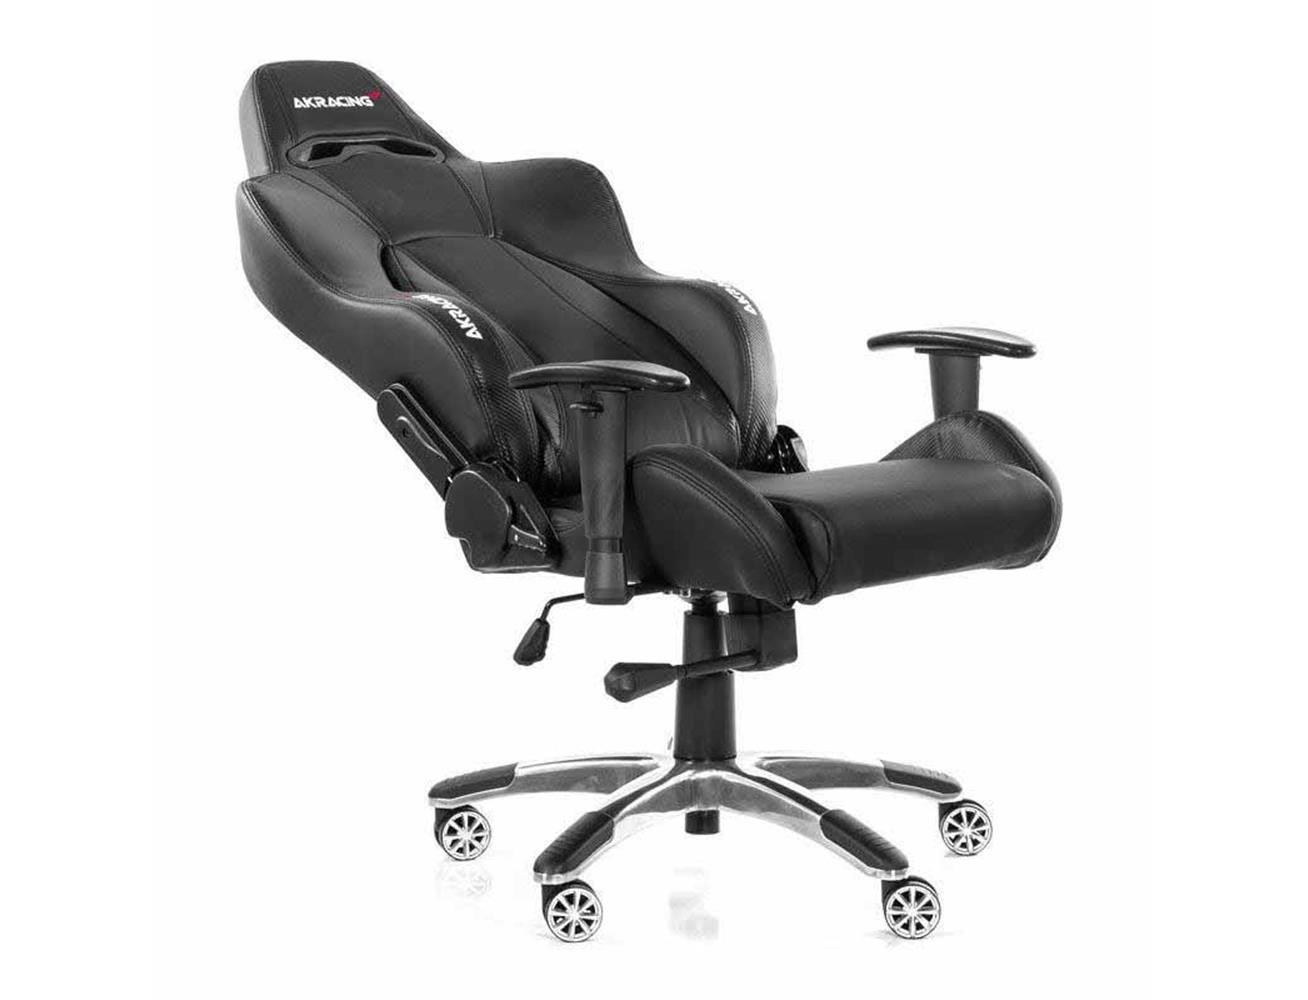 ... AK RACING PREMIUM Gaming Chair - Carbon Black  sc 1 st  Blink & AK RACING PREMIUM Gaming Chair - Best Price Online | Blink Kuwait